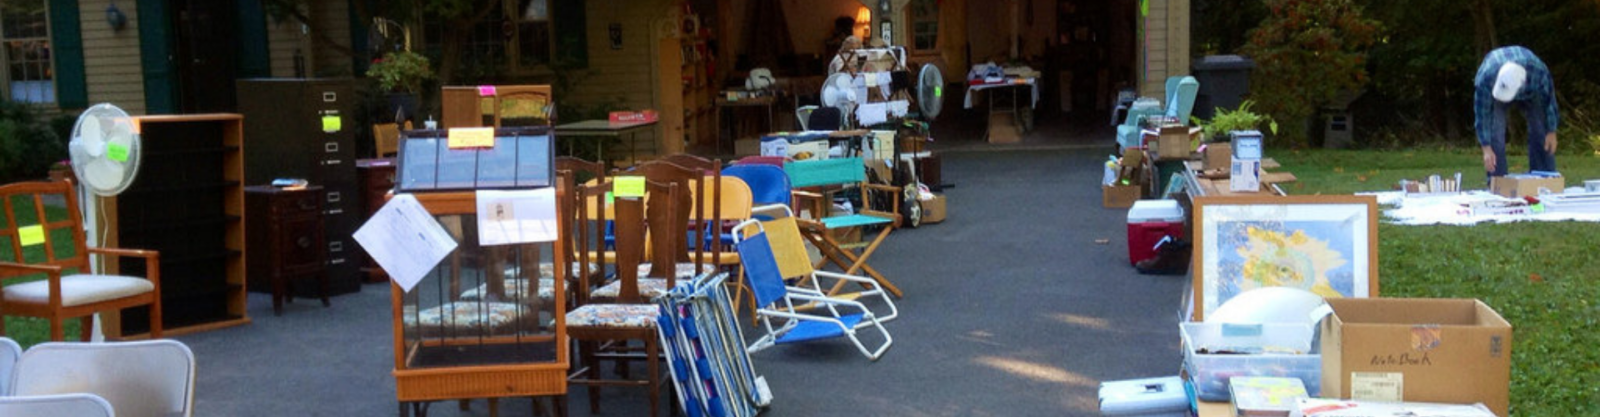 WV's Largest Yard Sale | 2019 – Visit Upshur County